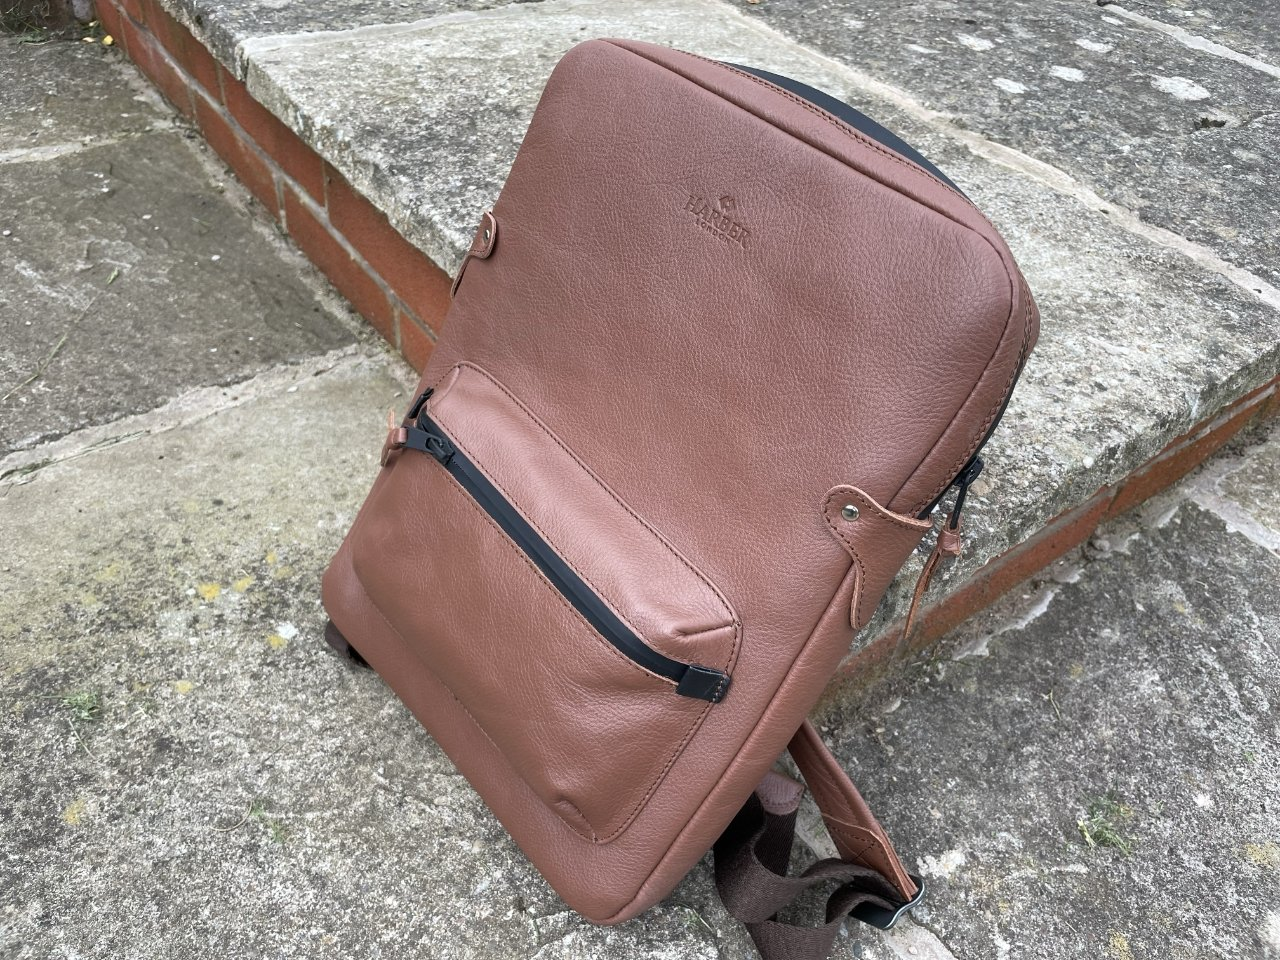 The exterior is fine grain leather with aviation-grade aluminium buckles